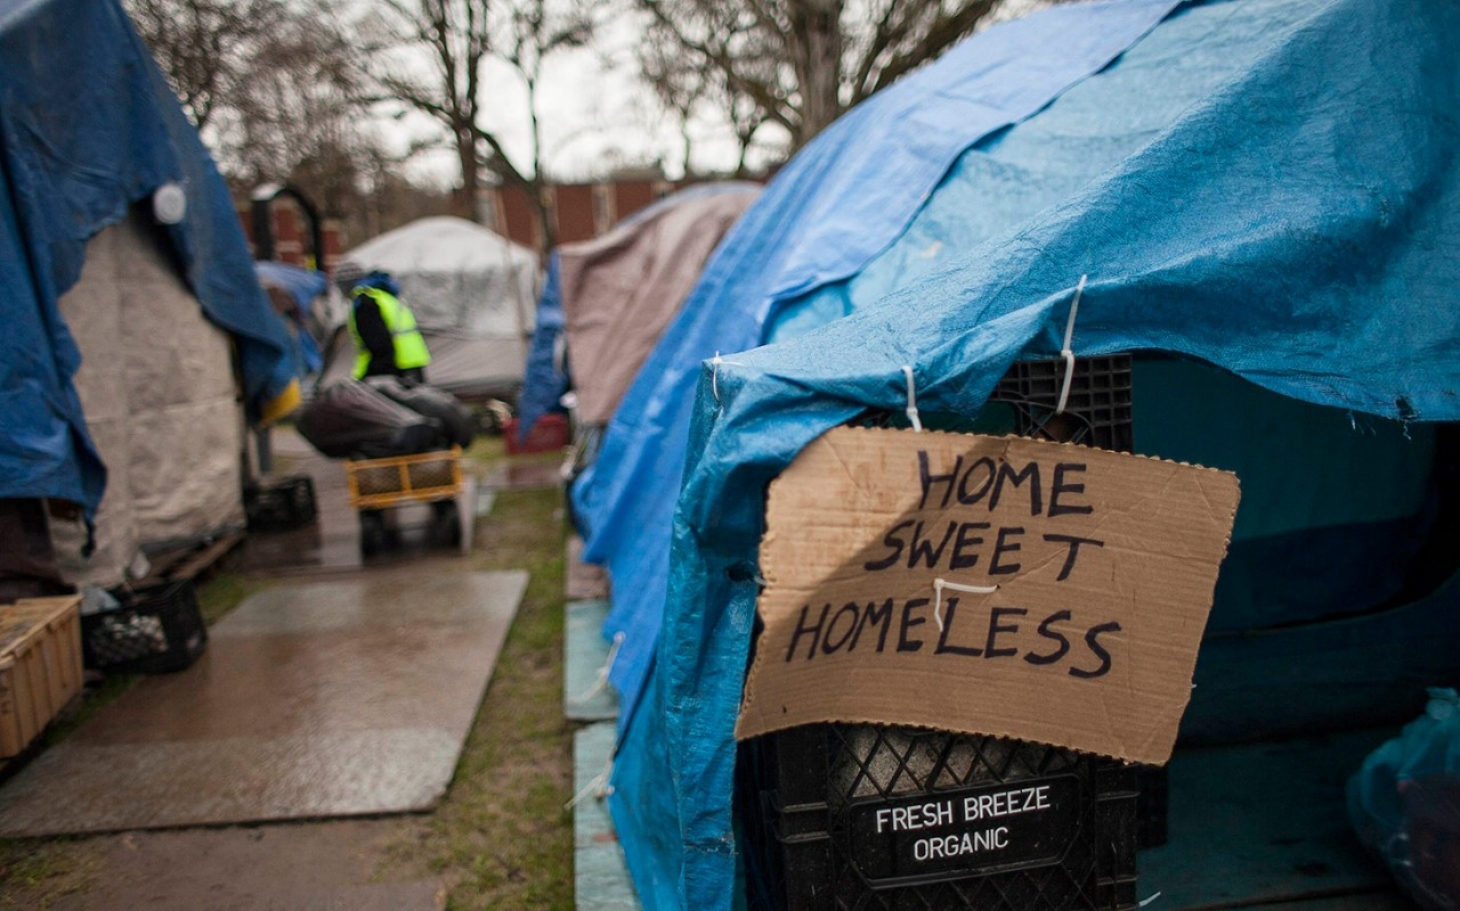 Seattle mayor defends plan for homeless tent c&s | Al Jazeera America & Seattle mayor defends plan for homeless tent camps | Al Jazeera ...